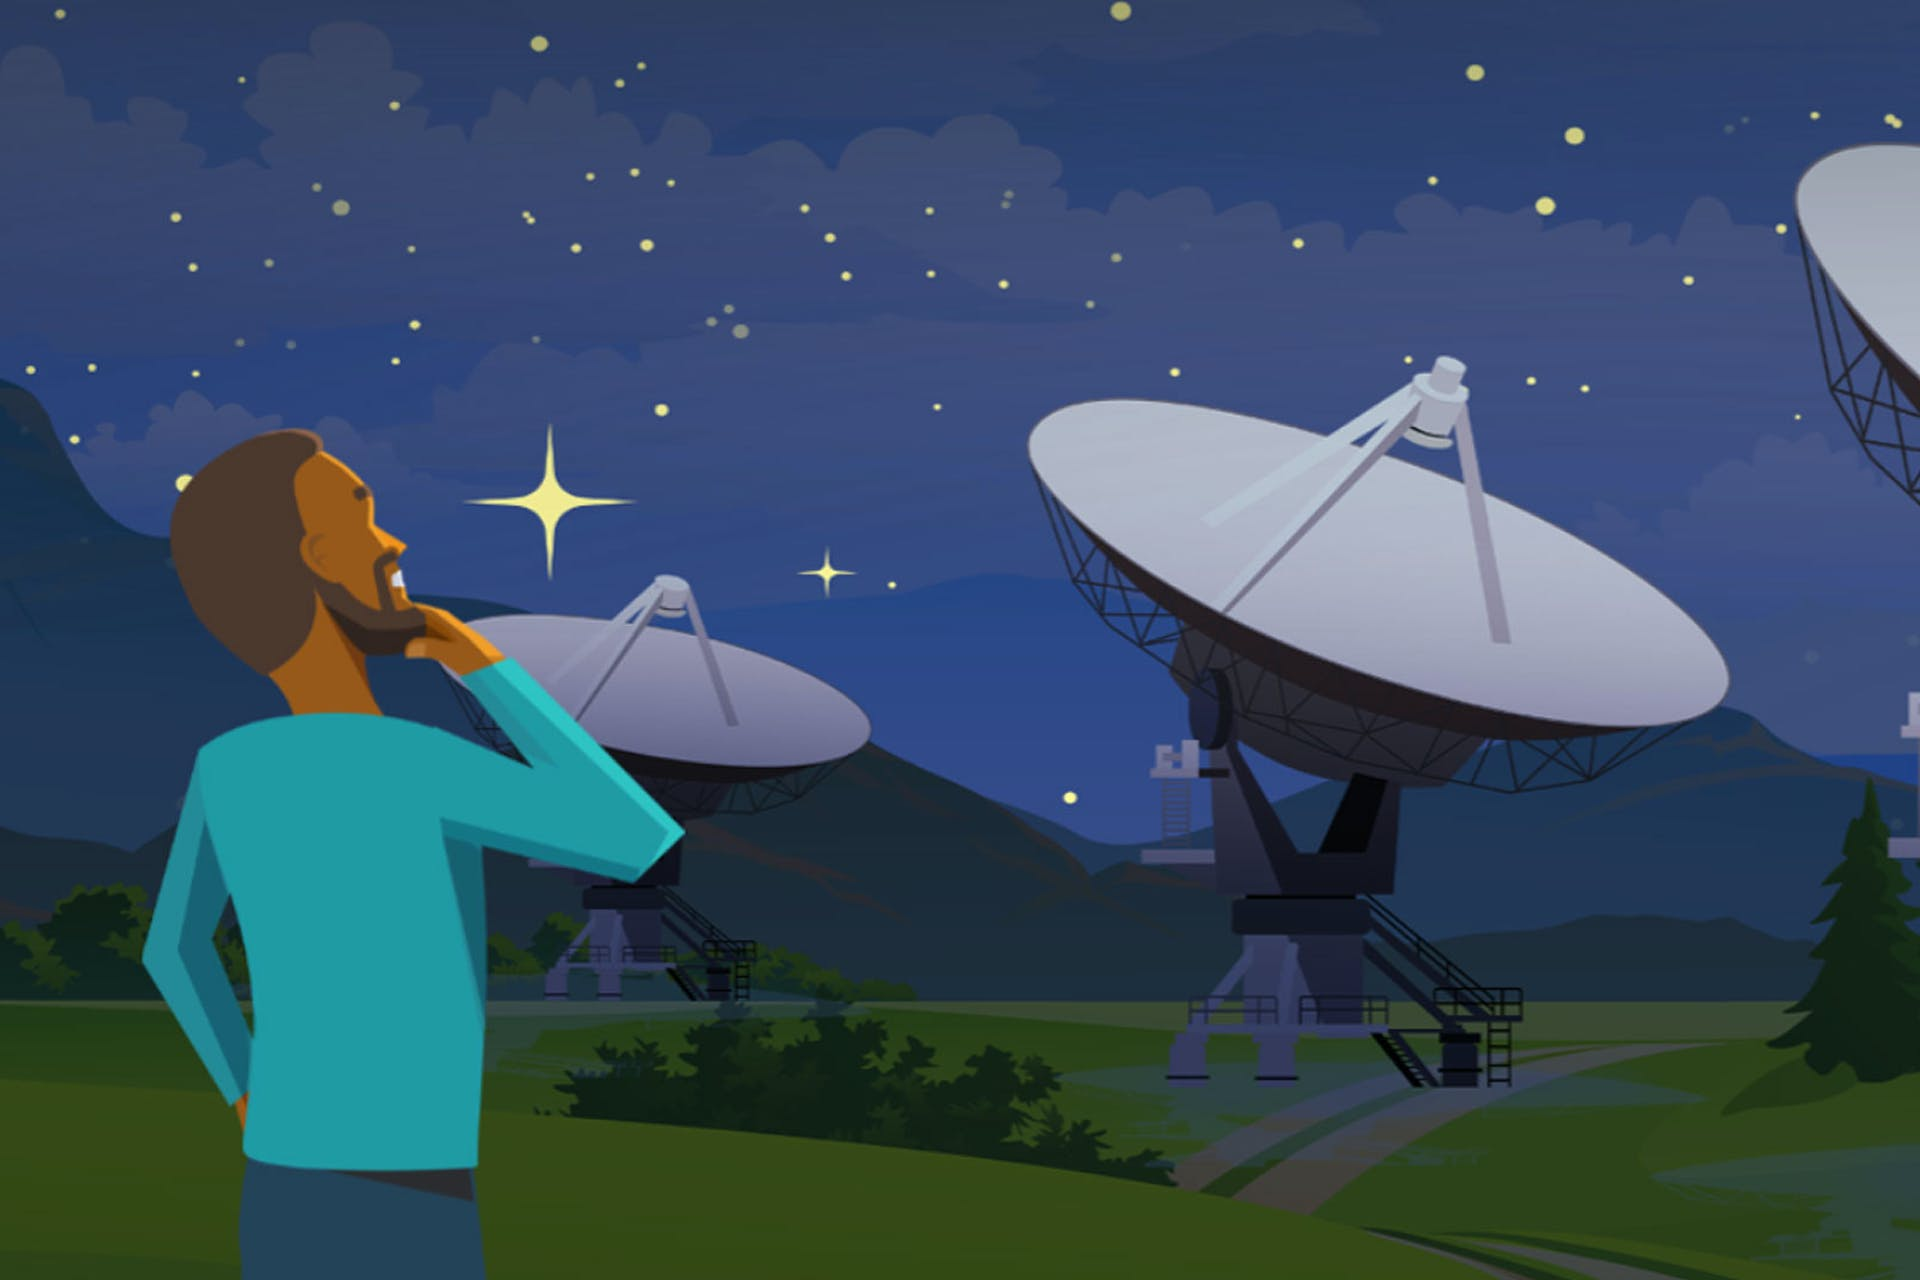 An illustration of a man looking up at a starry sky against a backdrop of satellite dishes